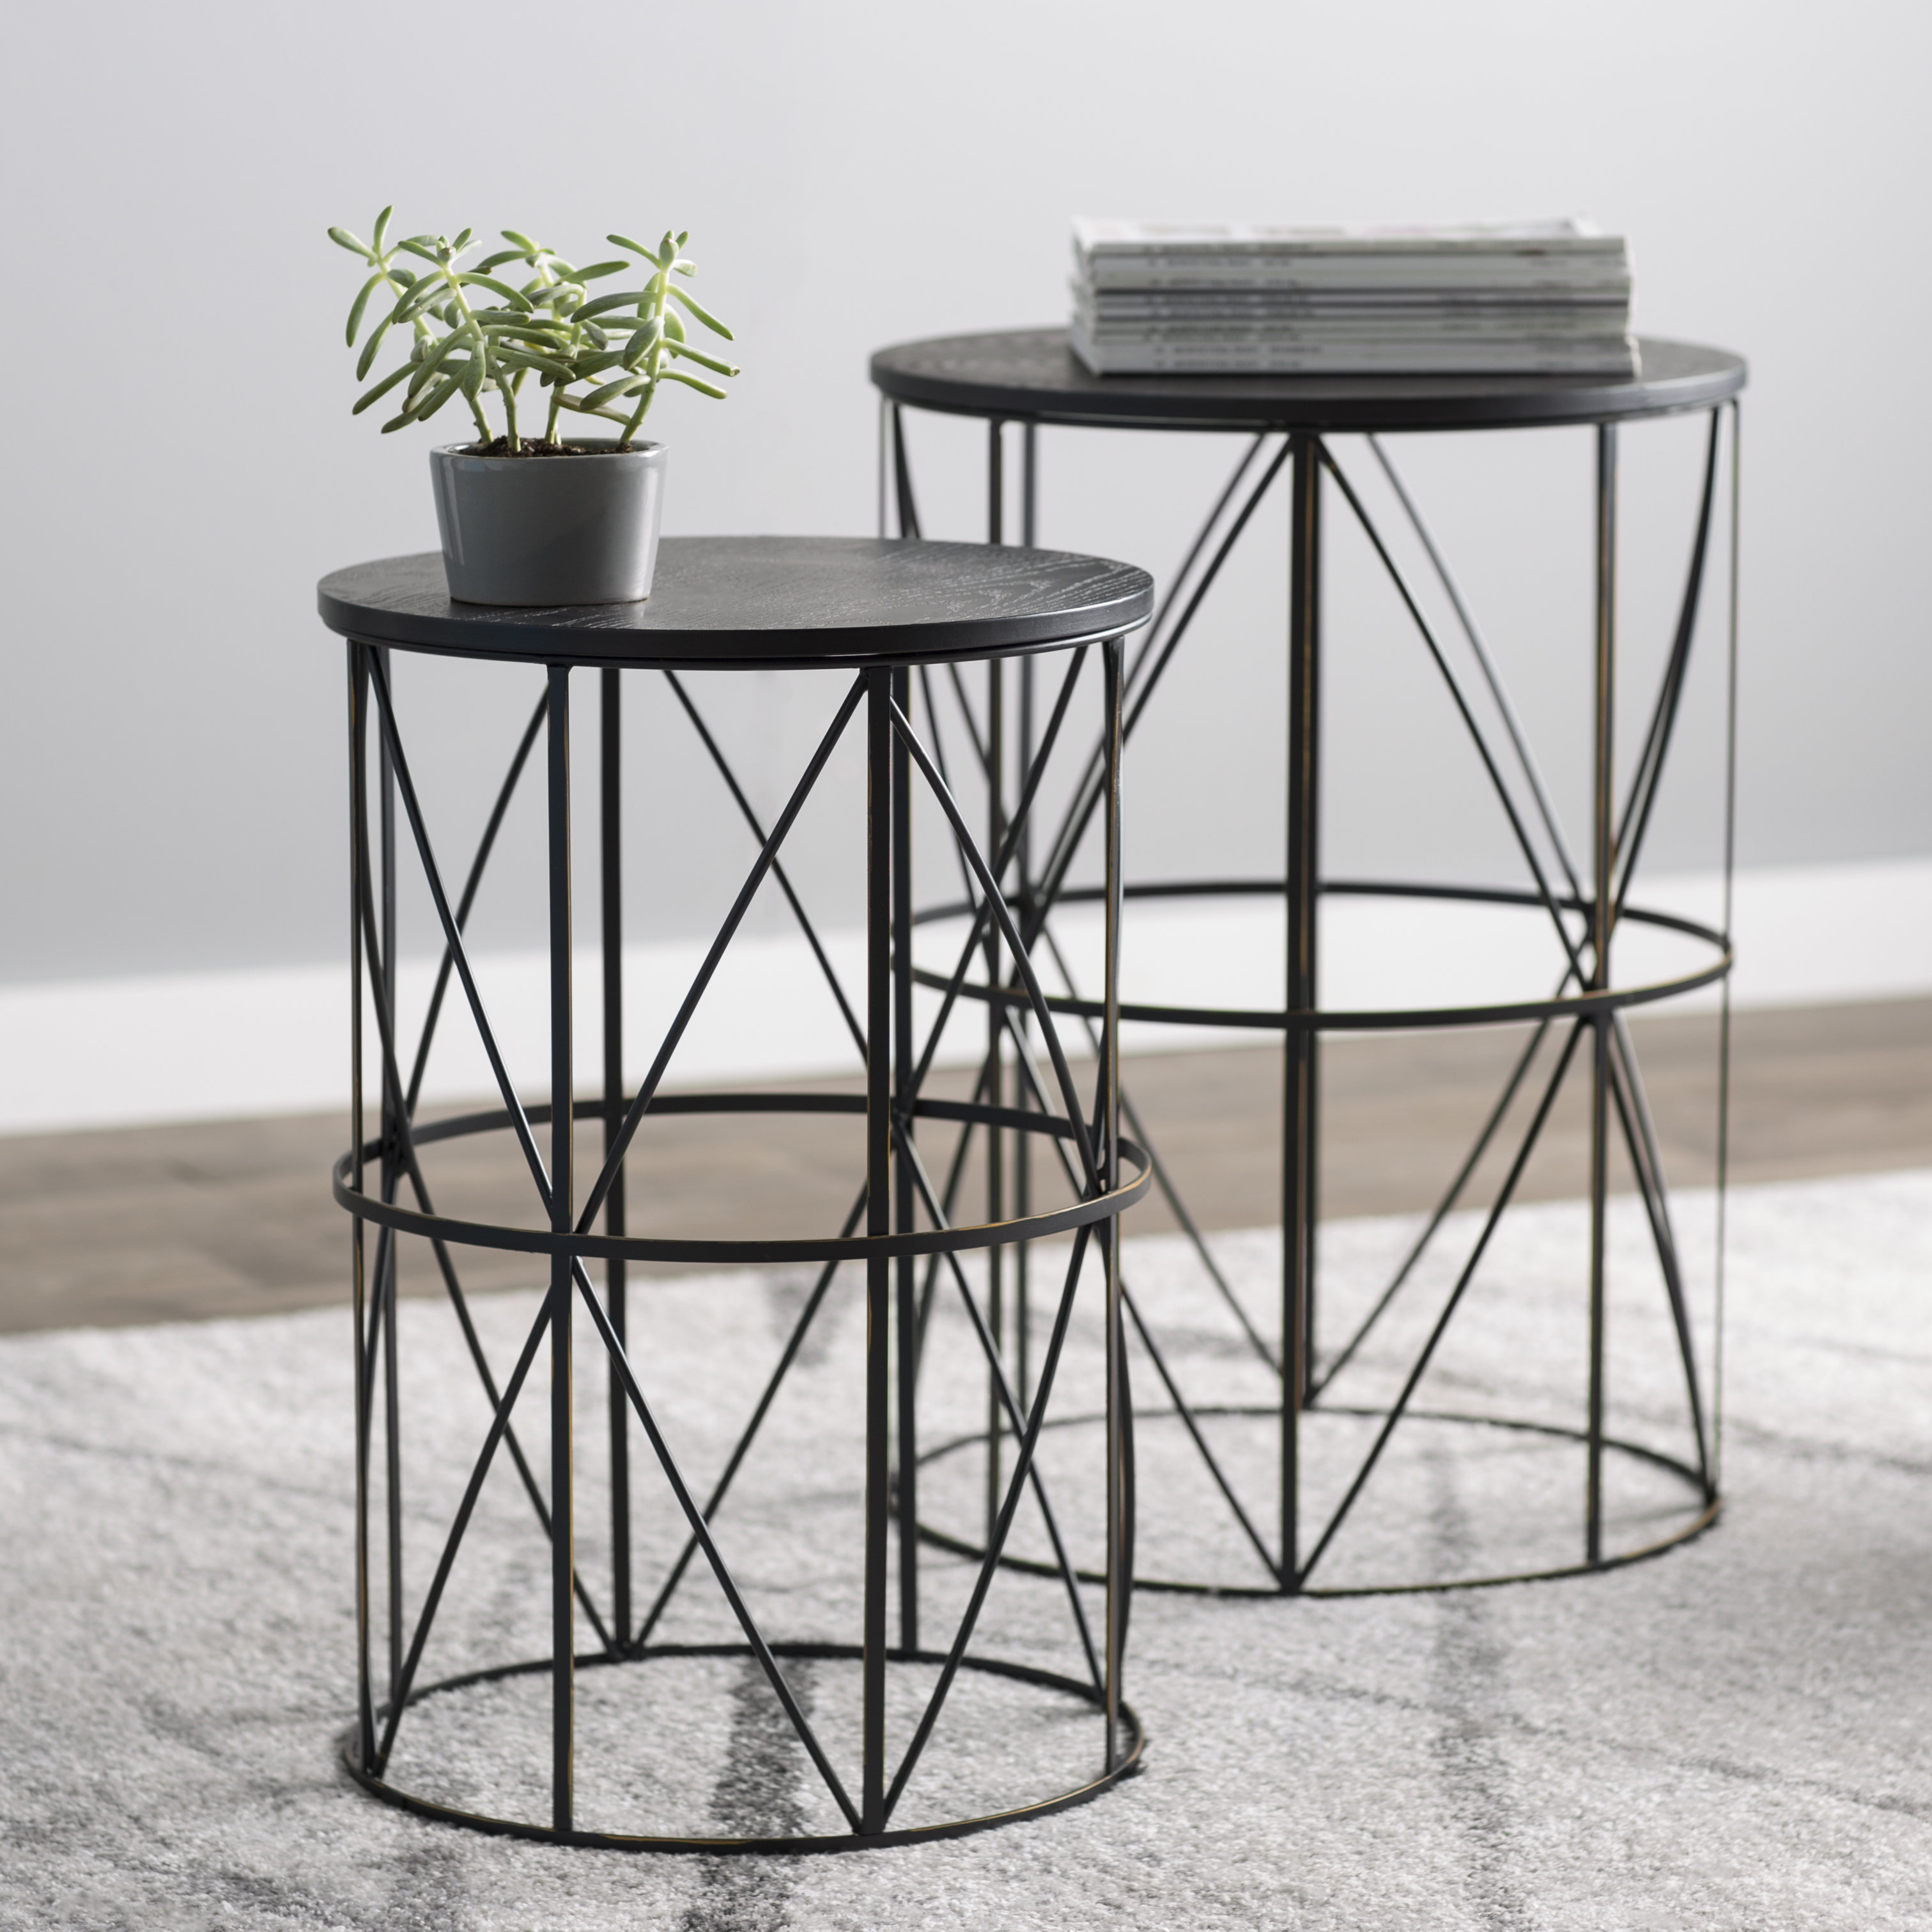 slifer piece nesting tables joss main patchen accent end table bronze patio side with umbrella hole collections glass for depot cabinet desk walnut coffee target wheels bedding